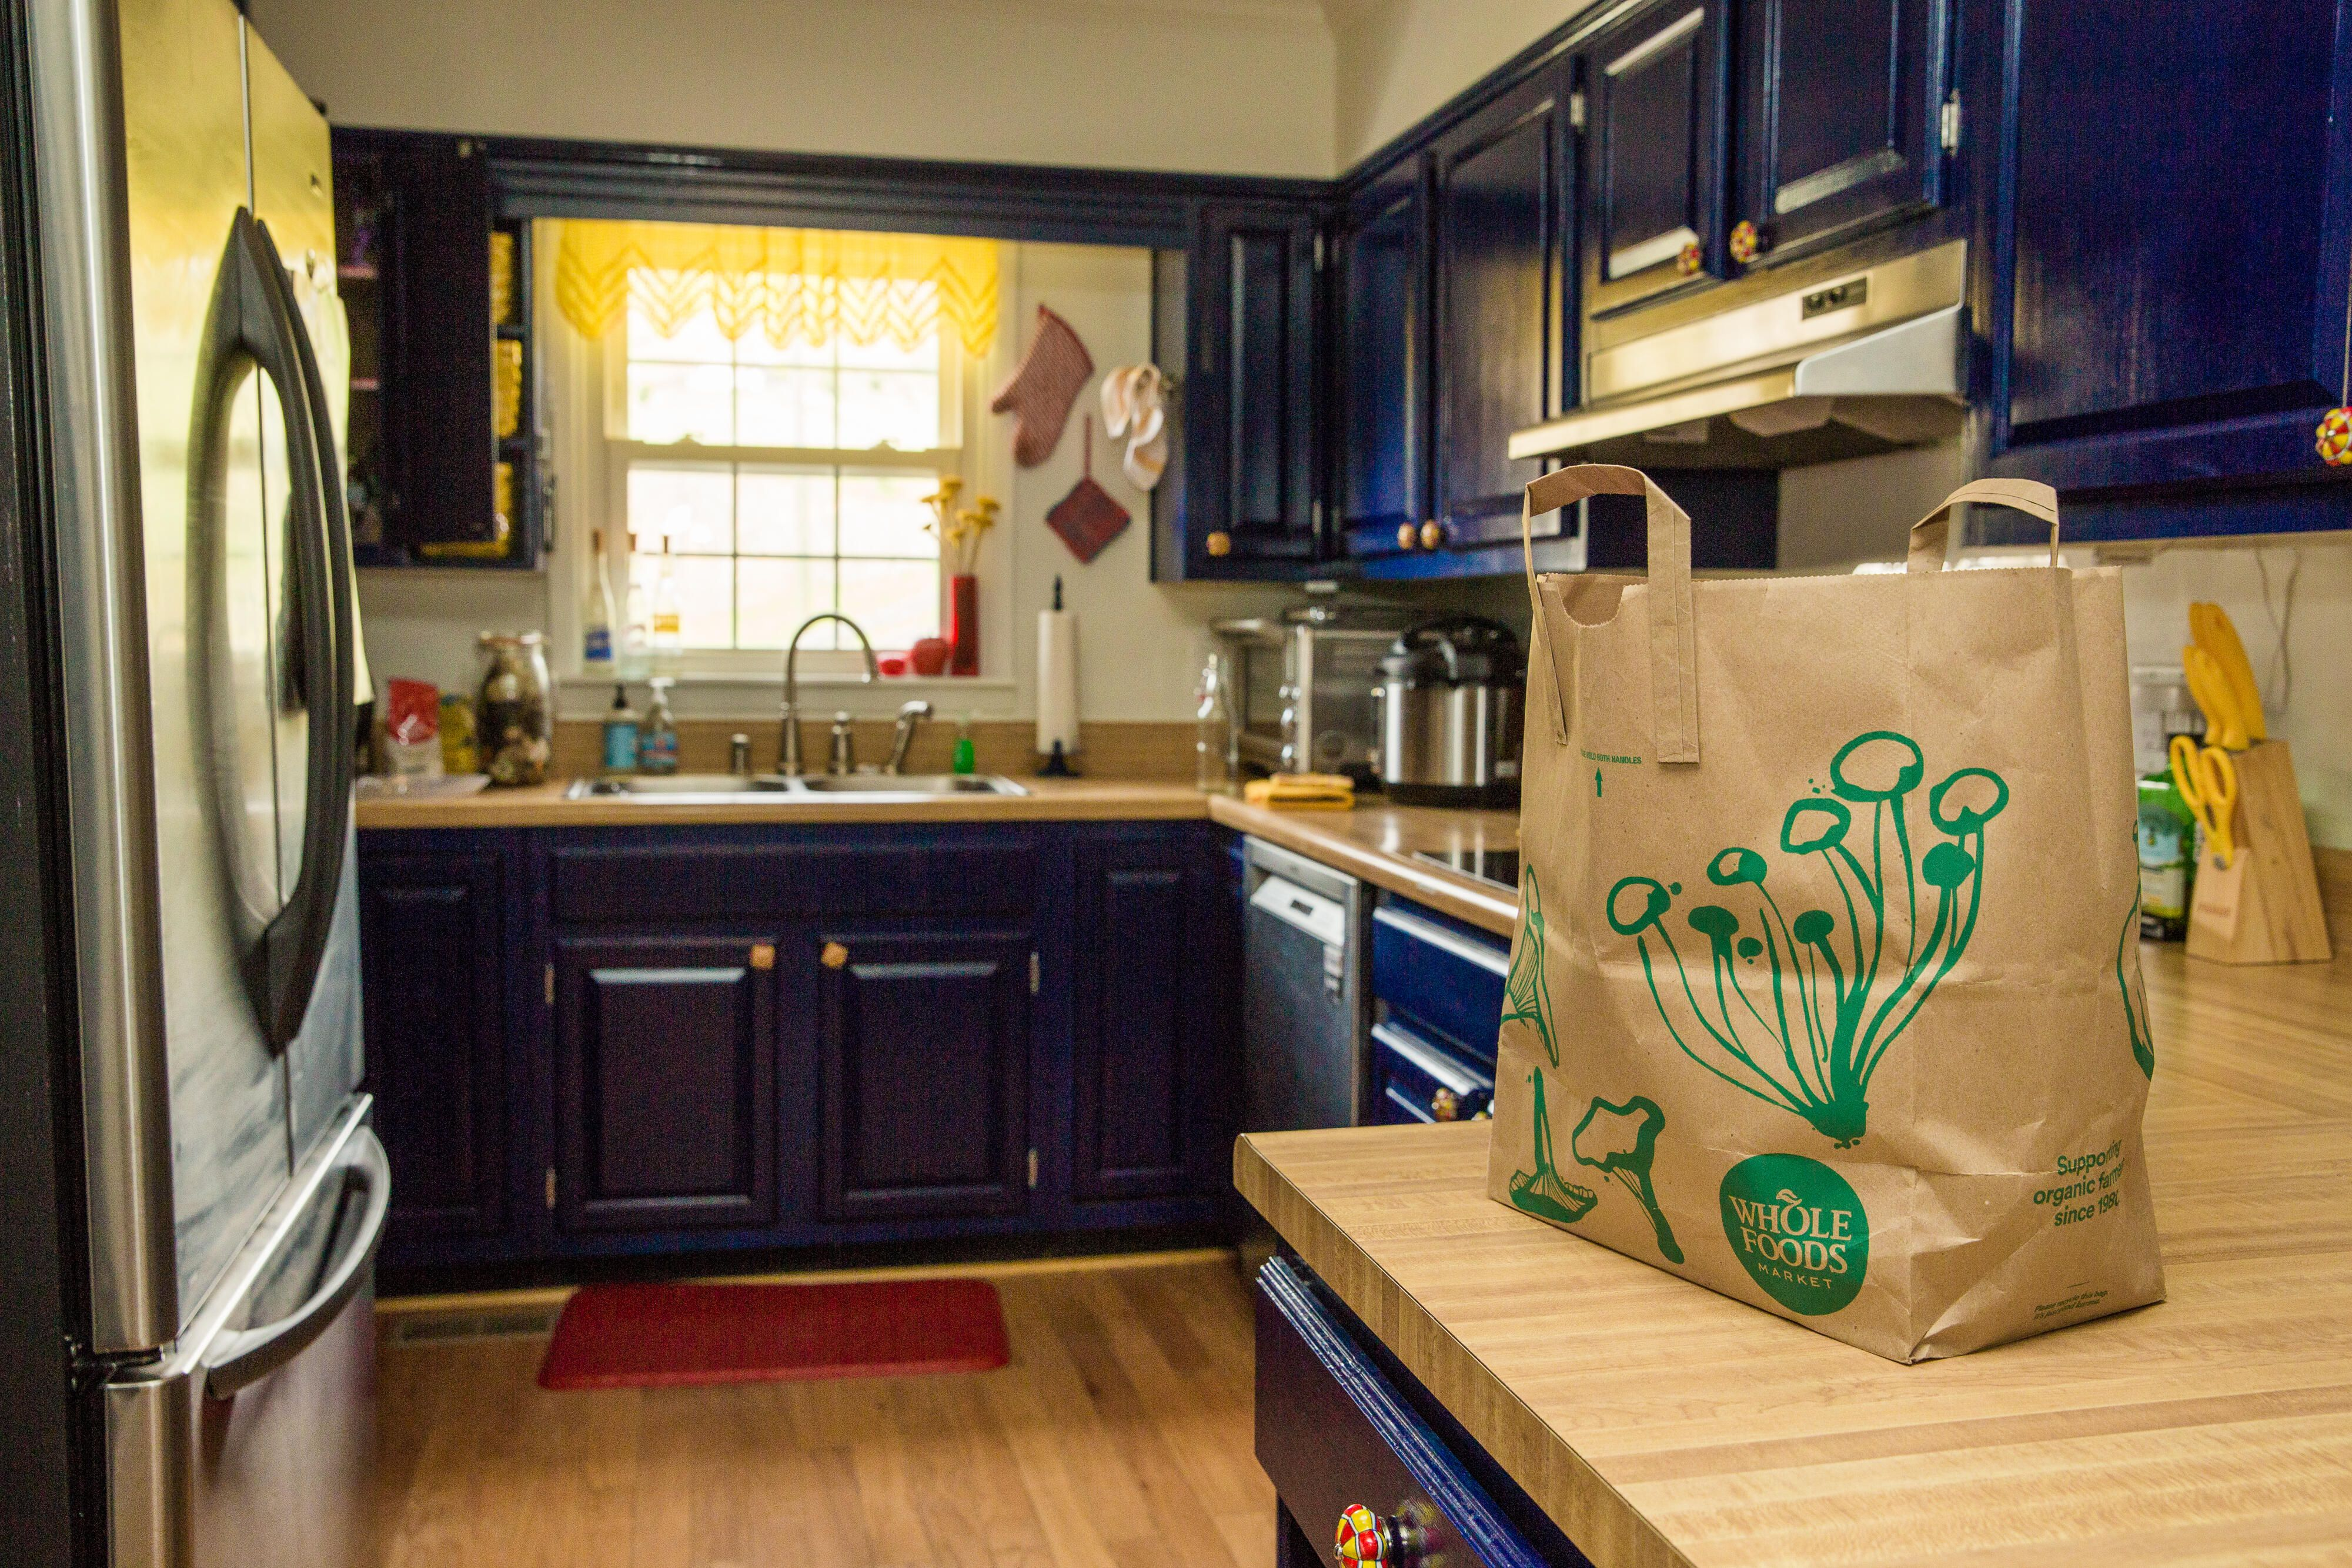 07-bag-of-groceries-at-home-whole-foods-paper